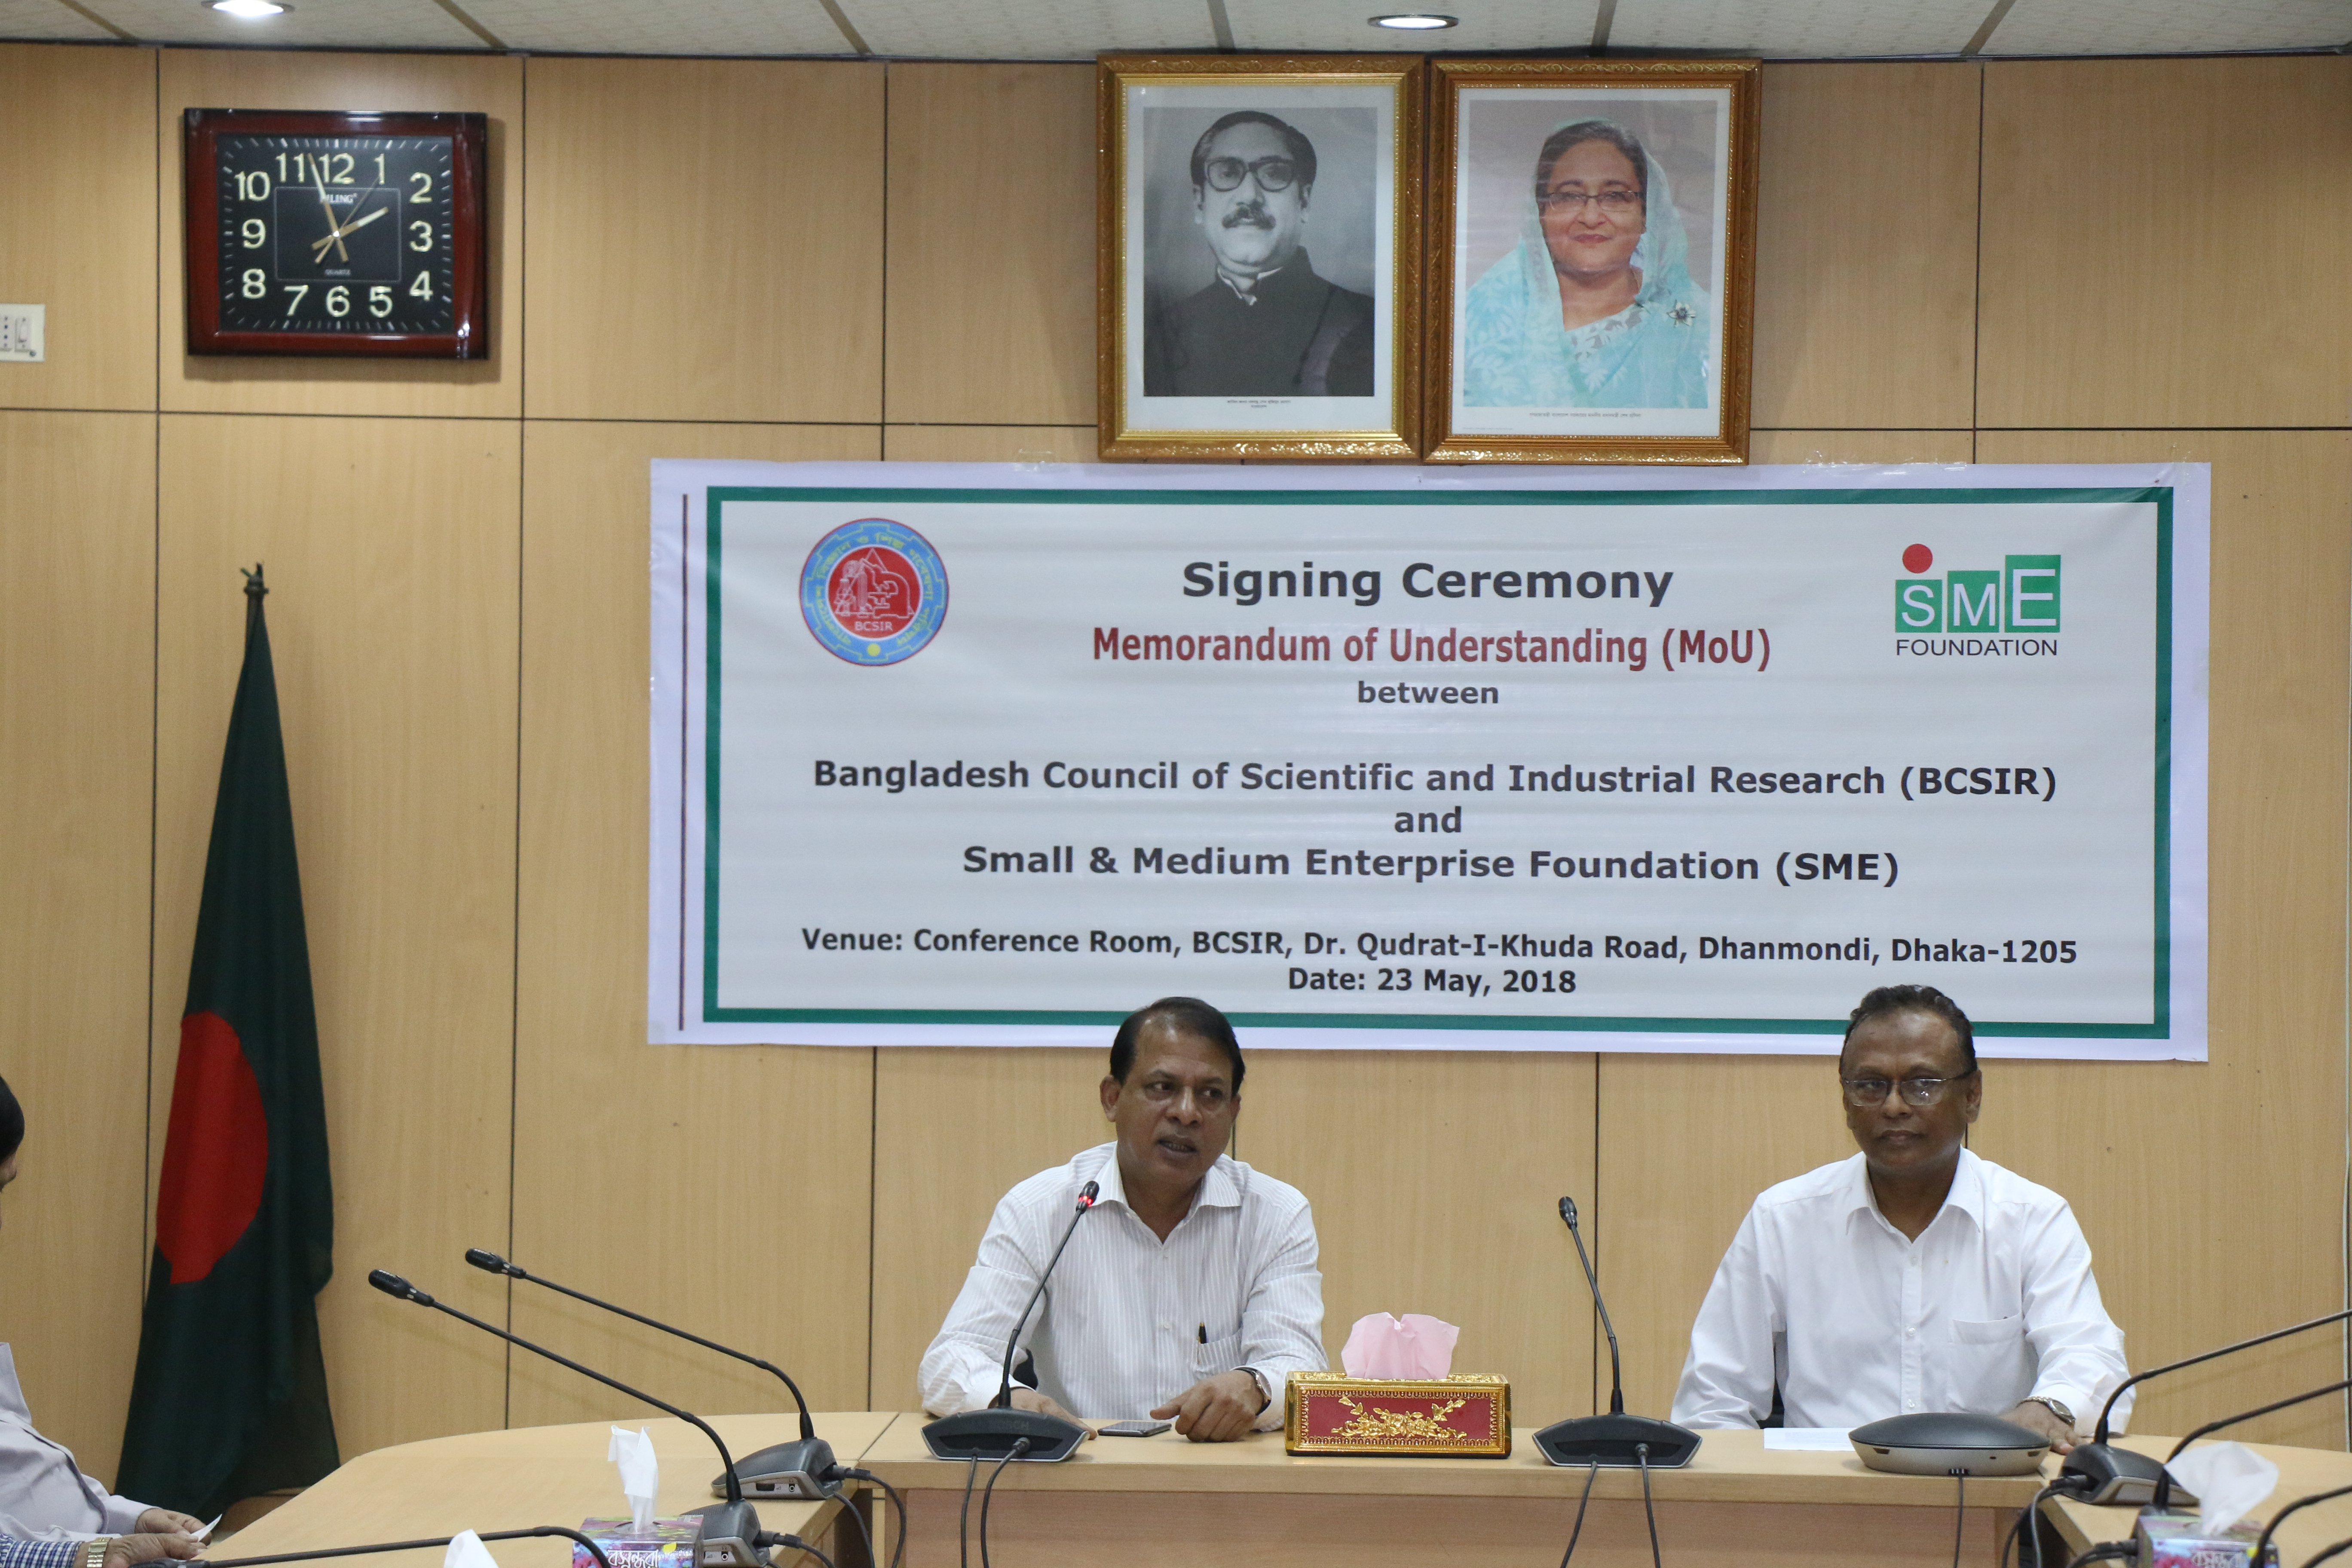 MoU signing ceremony between BCSIR and SME Foundation